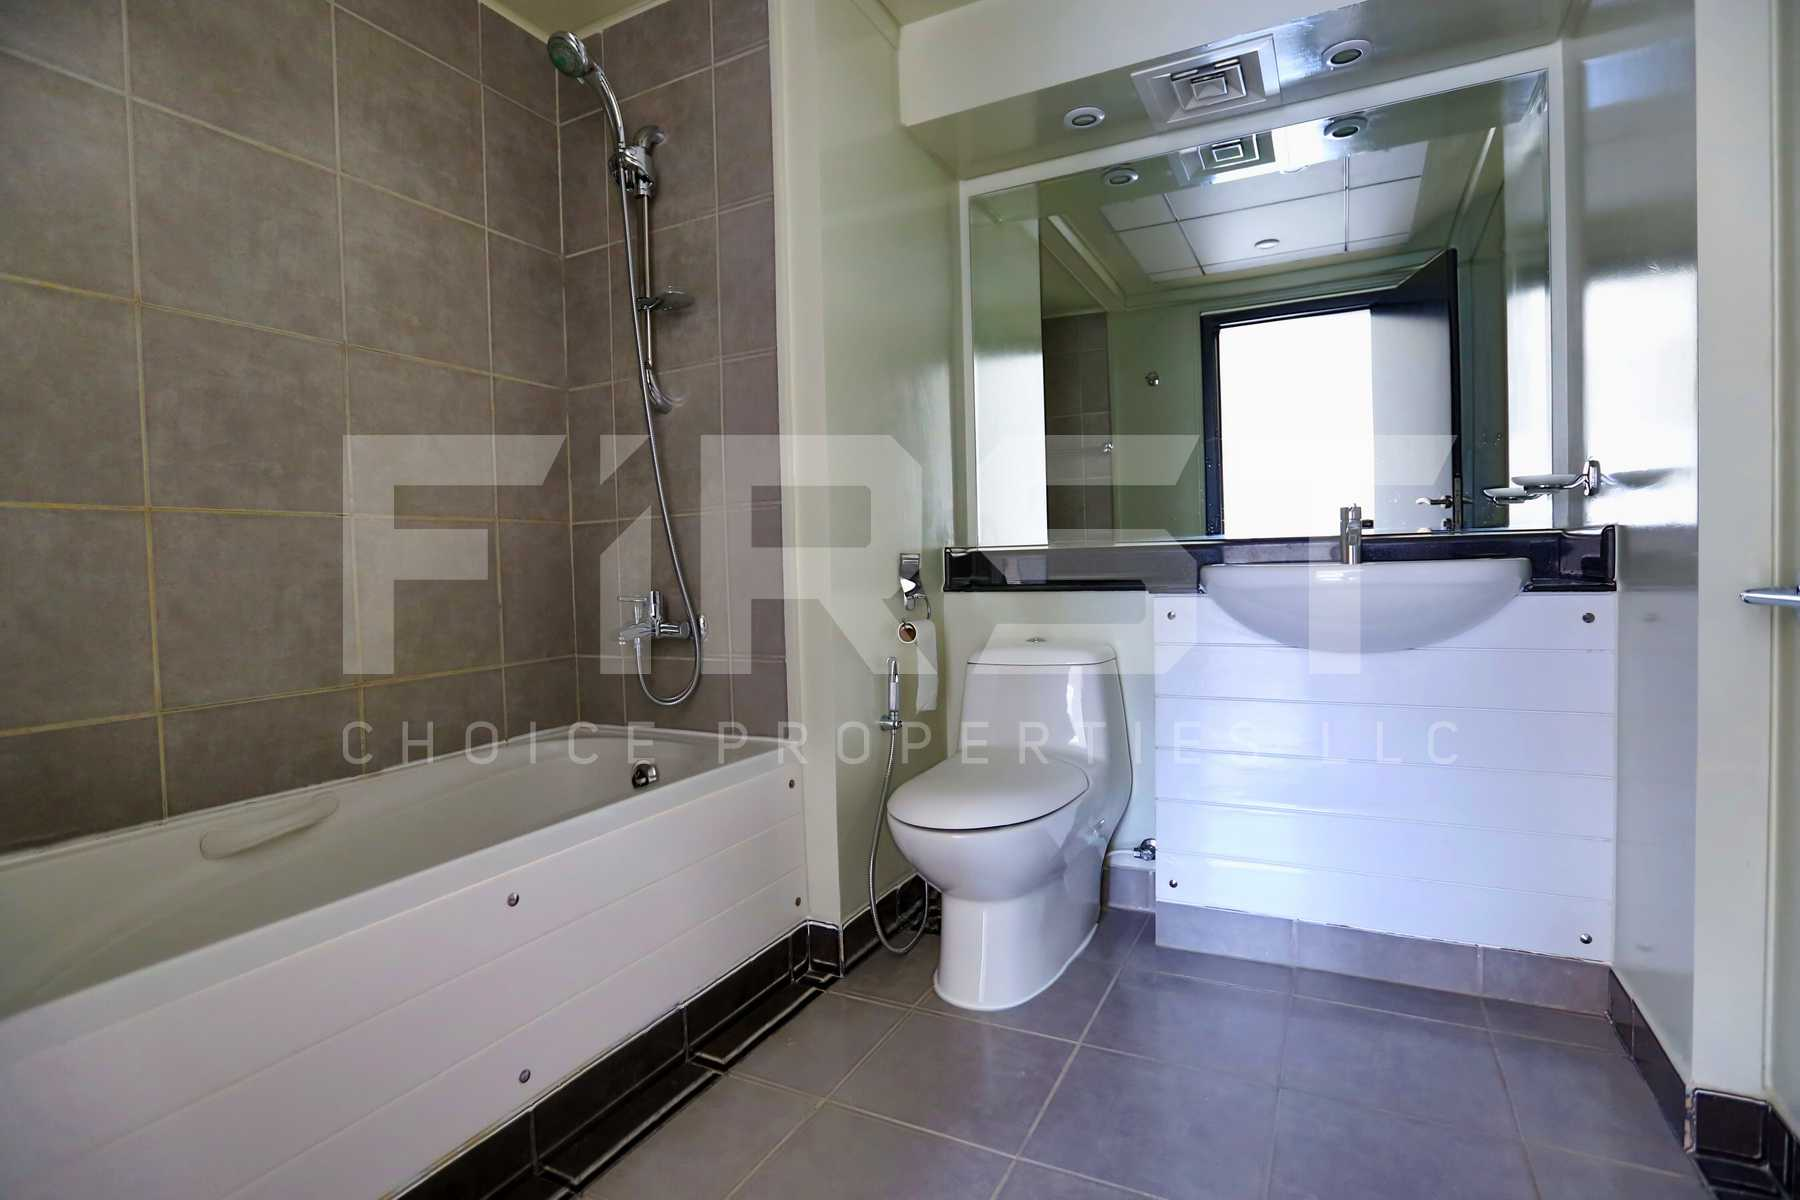 7. Internal Photo of 2 Bedroom Apartment Type B in Al Reef Downtown Al Reef Abu Dhabi UAE 114 sq.m 1227 (16).jpg